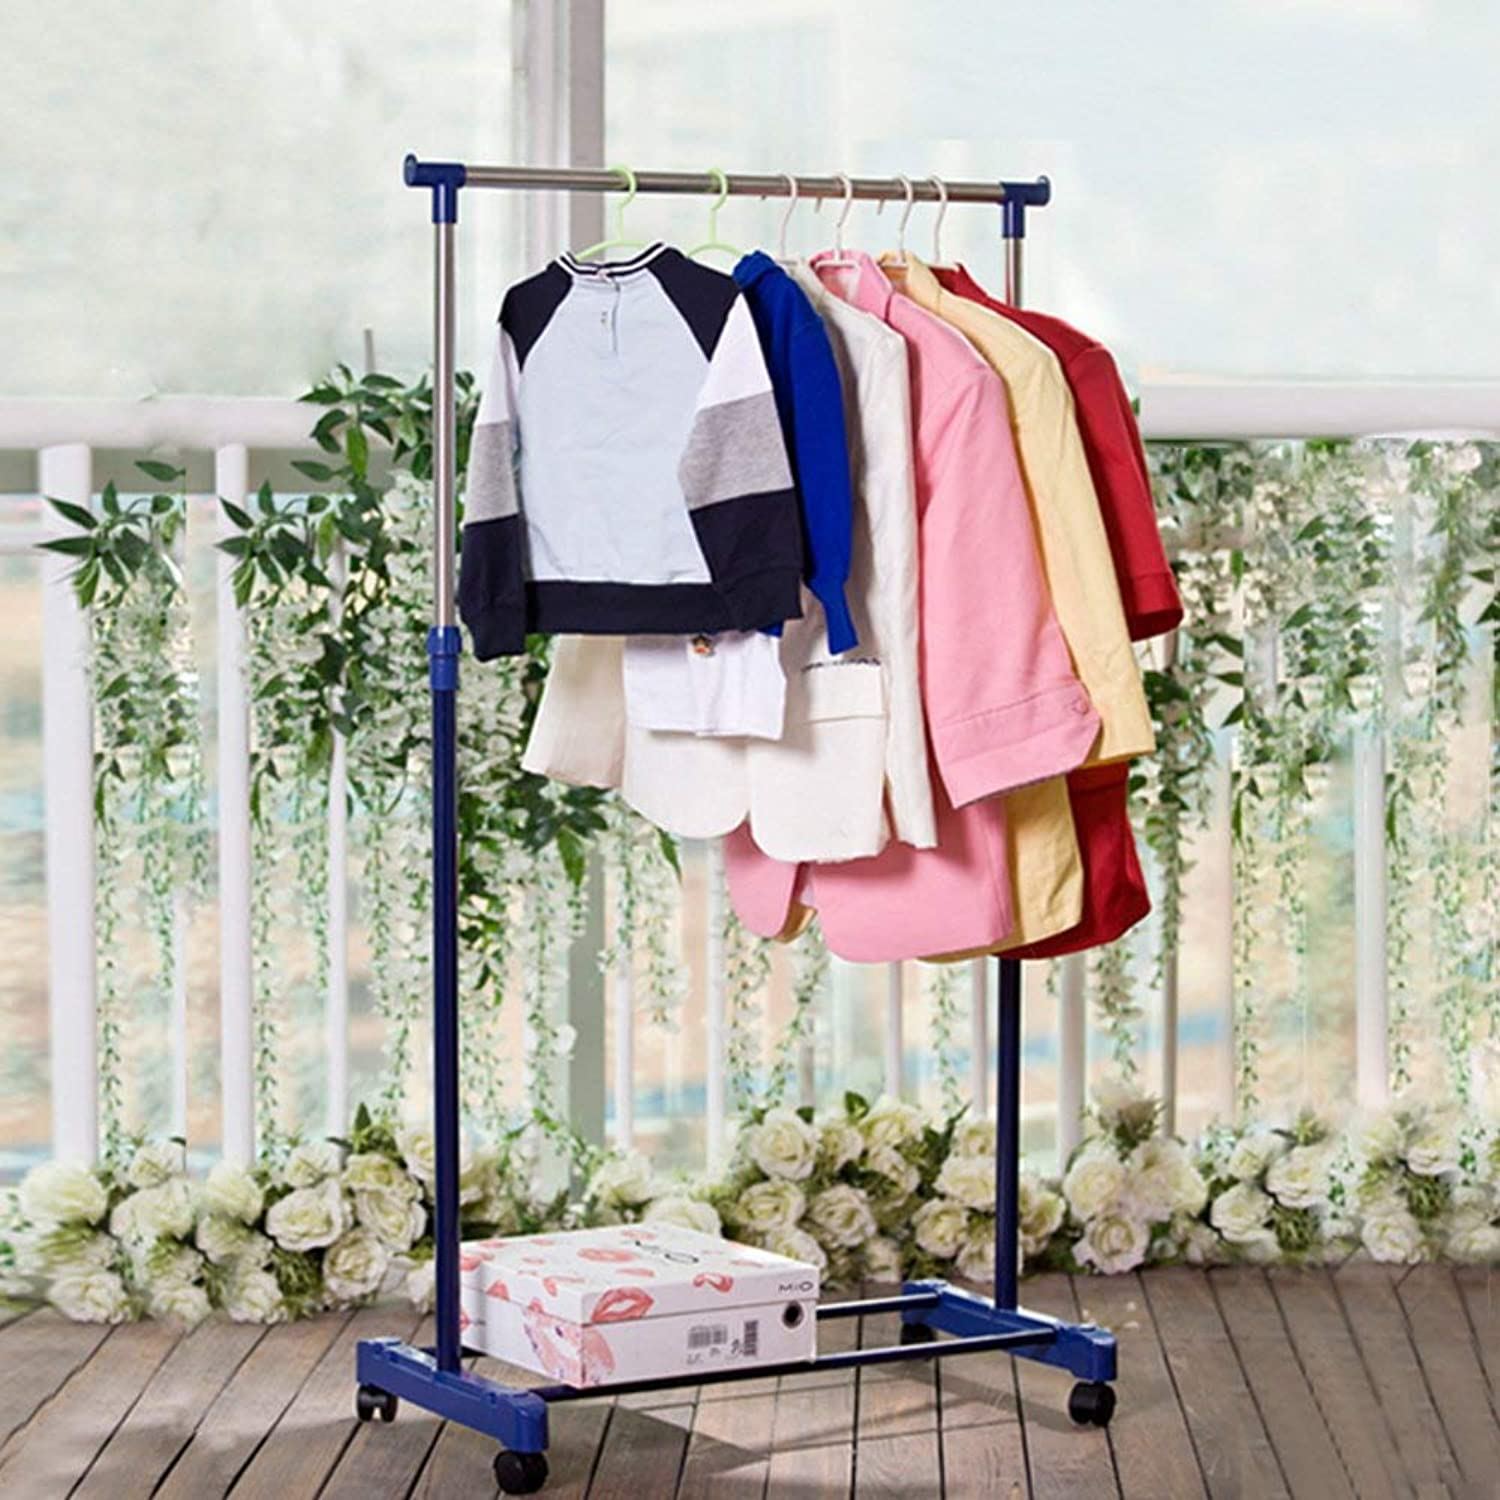 DYR Single-Hole Clothesline, Padded Stainless Steel Interior Clothes Hanger Interior Room Hanger